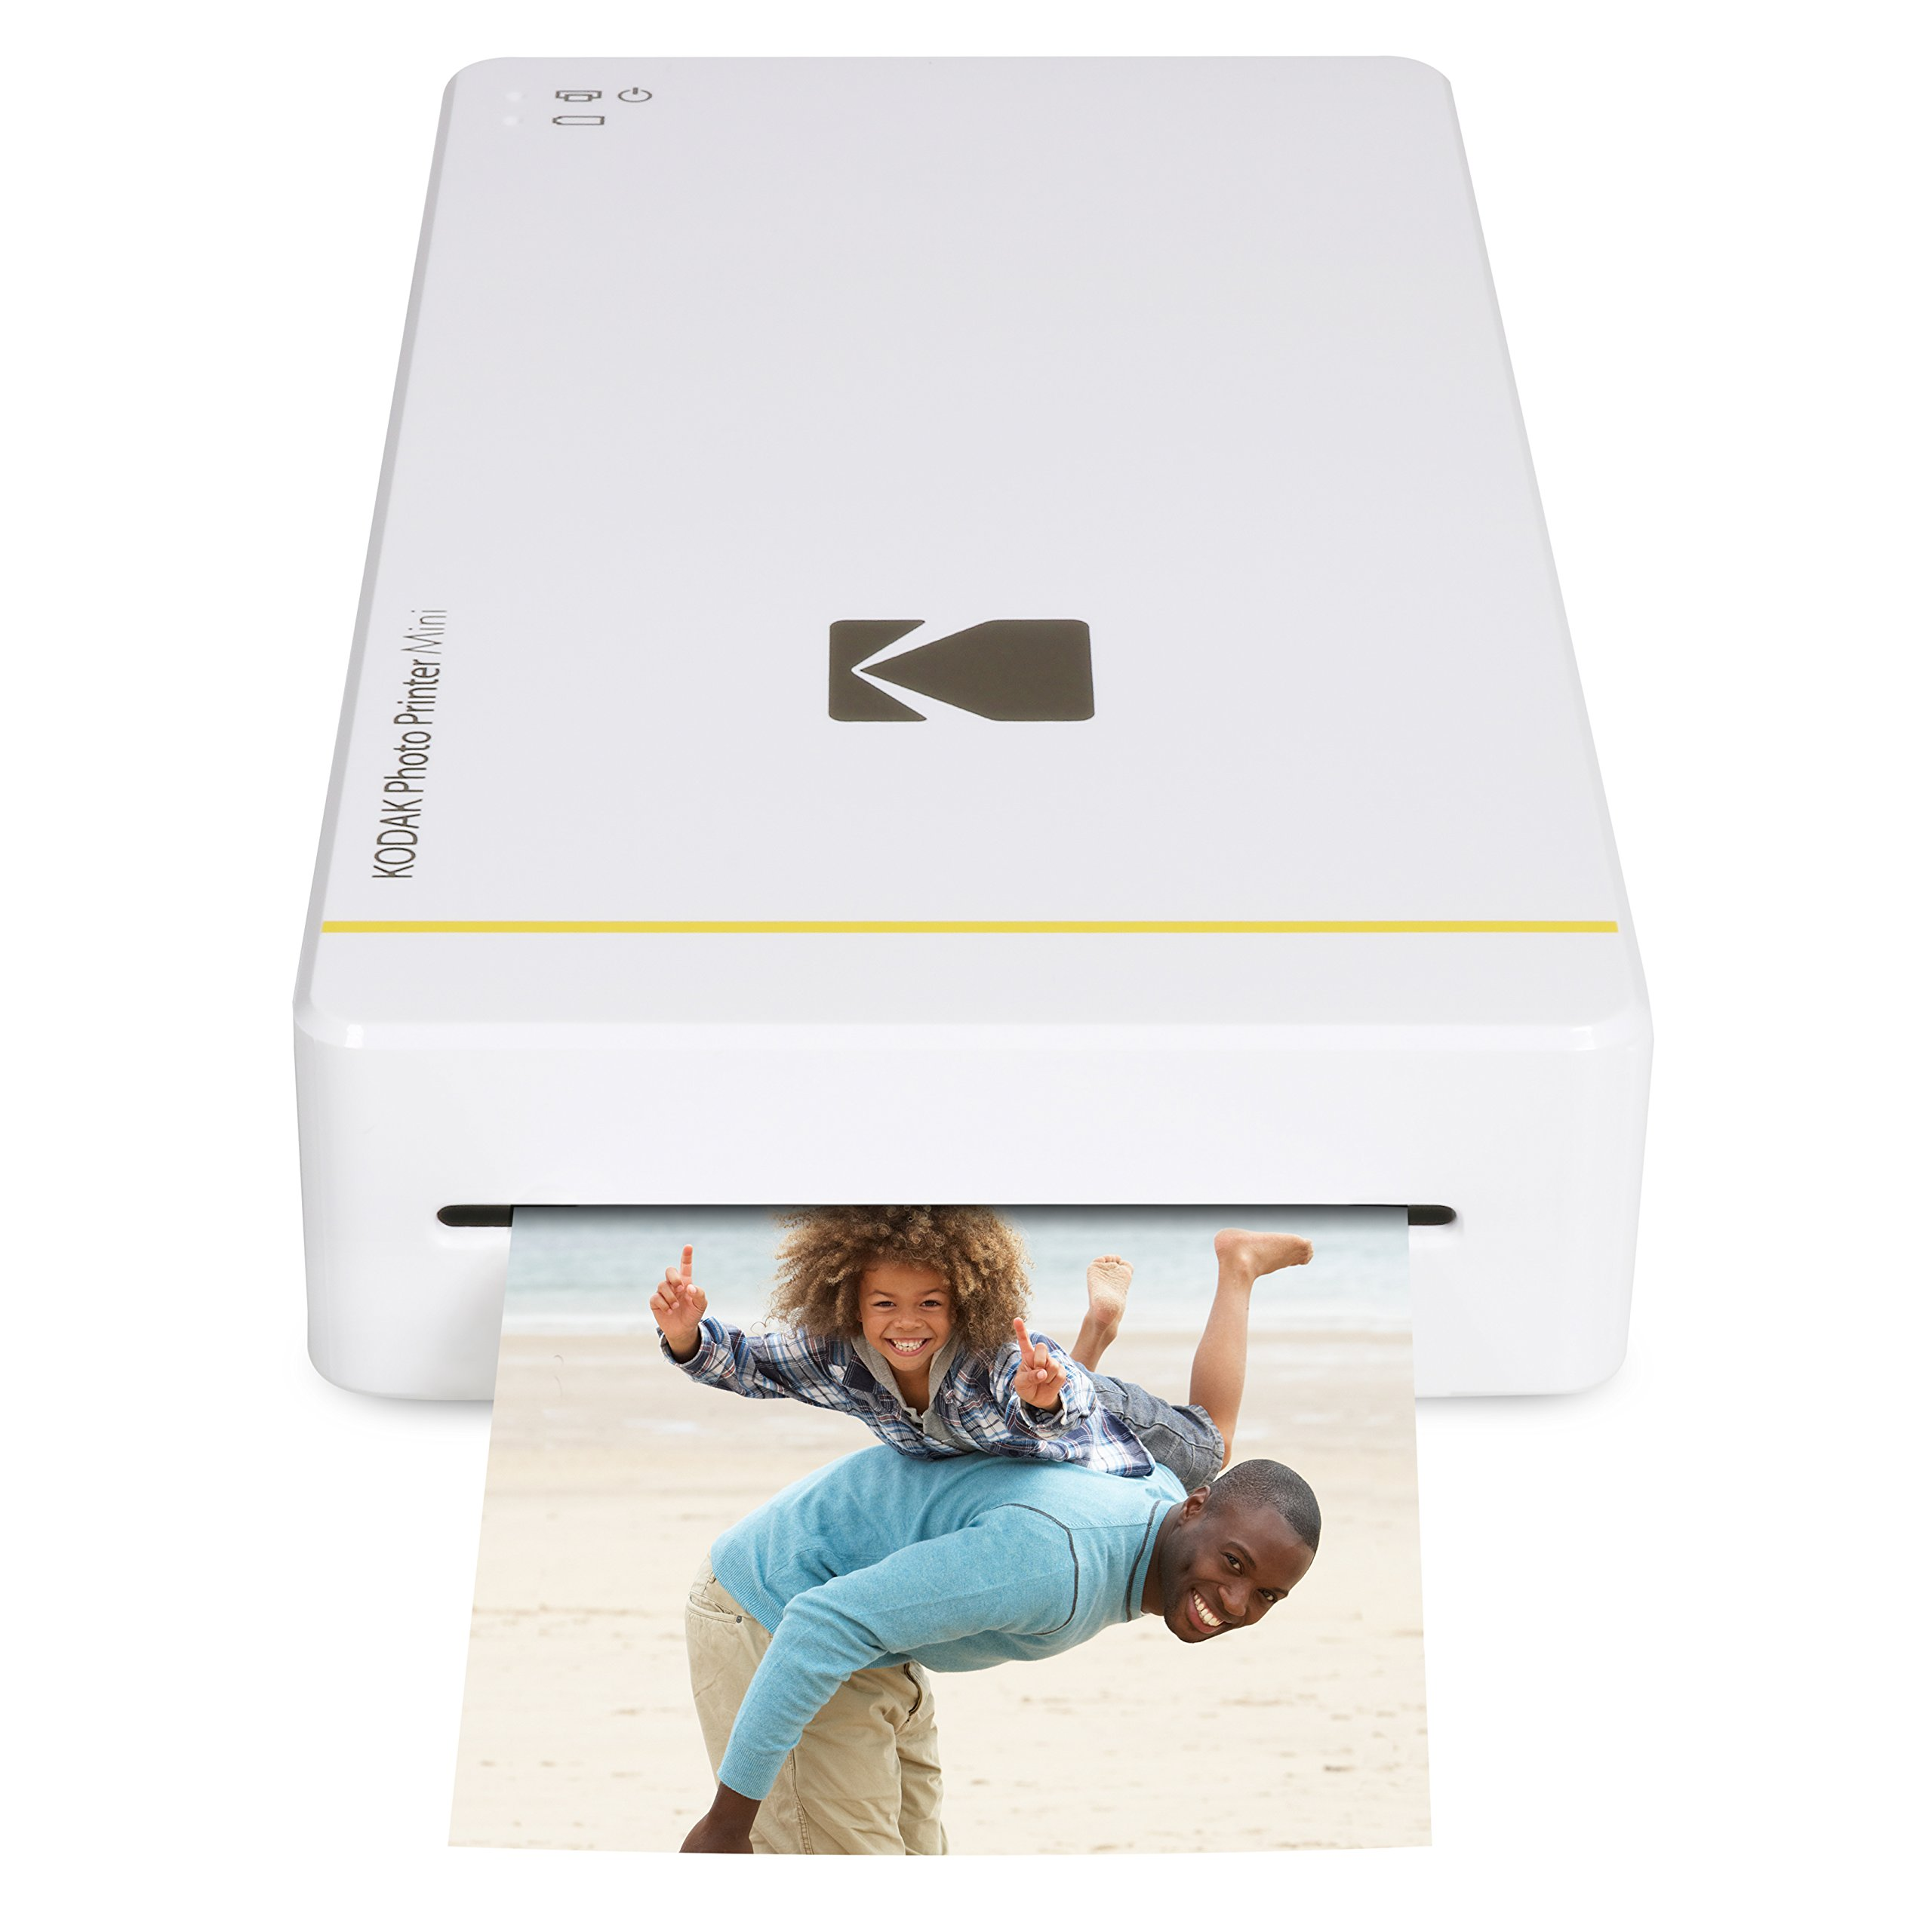 Kodak Mini Portable Mobile Instant Photo Printer - Wi-Fi & NFC Compatible - Wirelessly Prints 2.1 x 3.4'' Images, Advanced DyeSub Printing Technology (White) Compatible with Android & iOS by KODAK